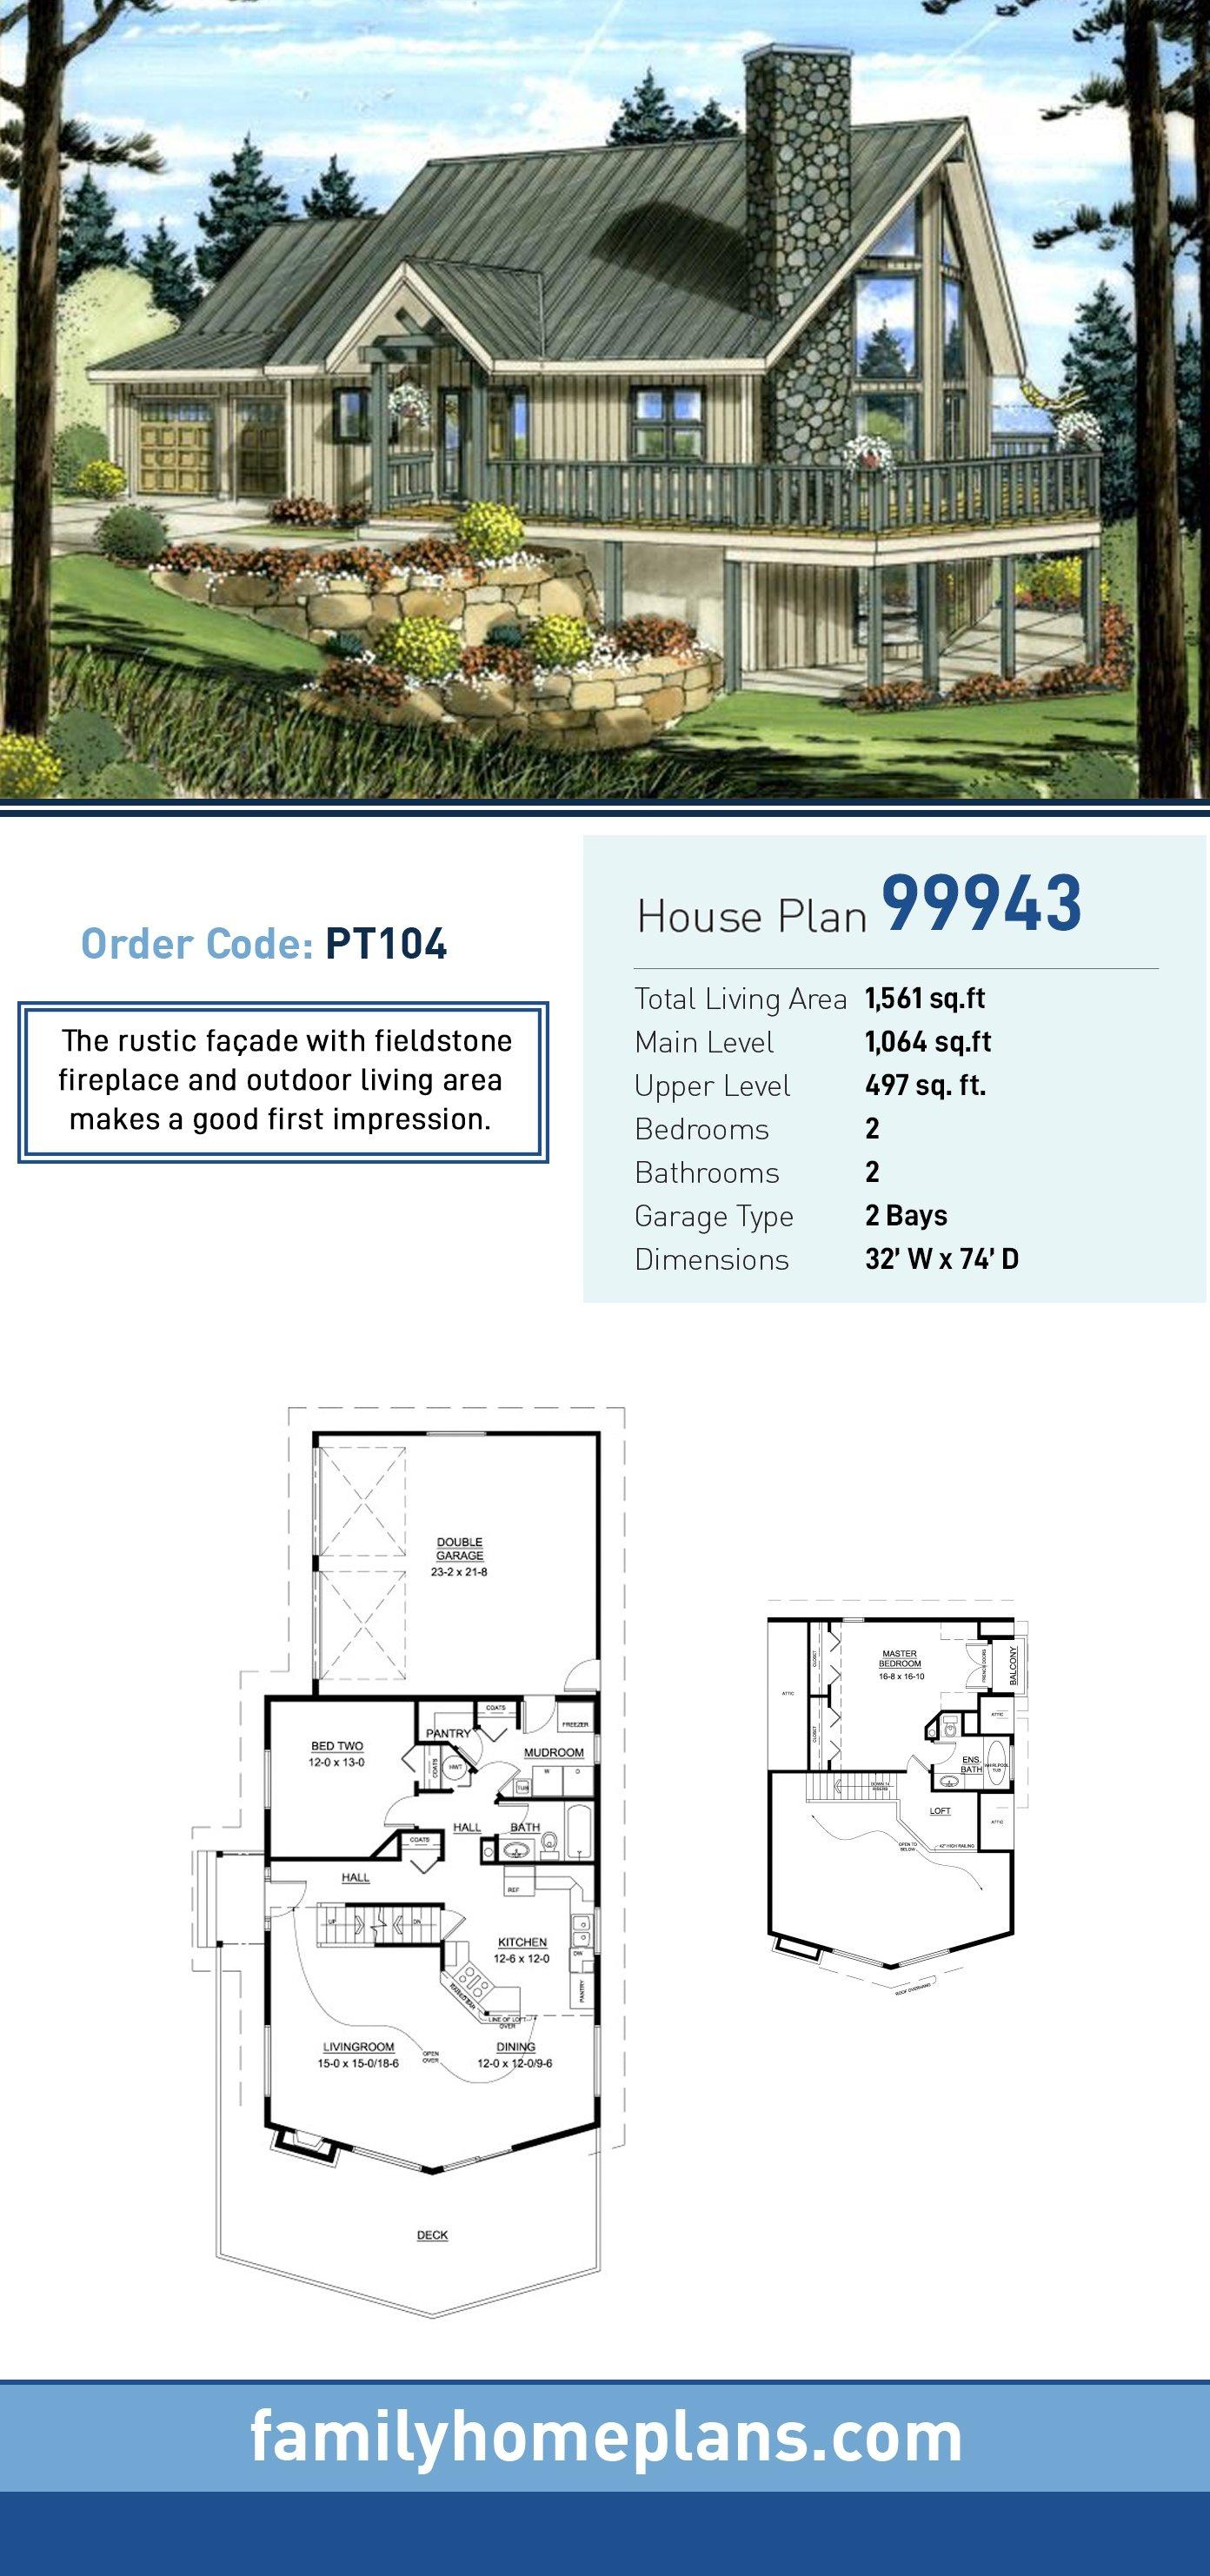 Contemporary House Plan 99943 with 2 Beds, 2 Baths, 2 Car Garage